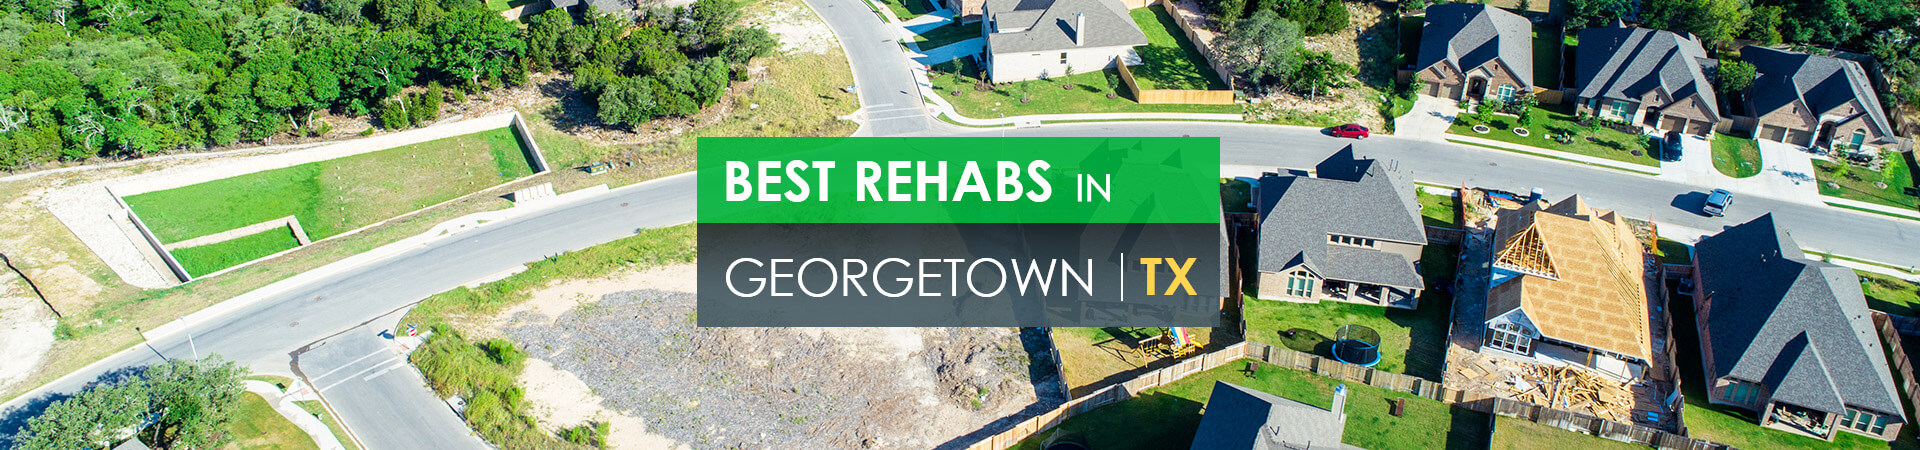 Best rehabs in Georgetown, TX